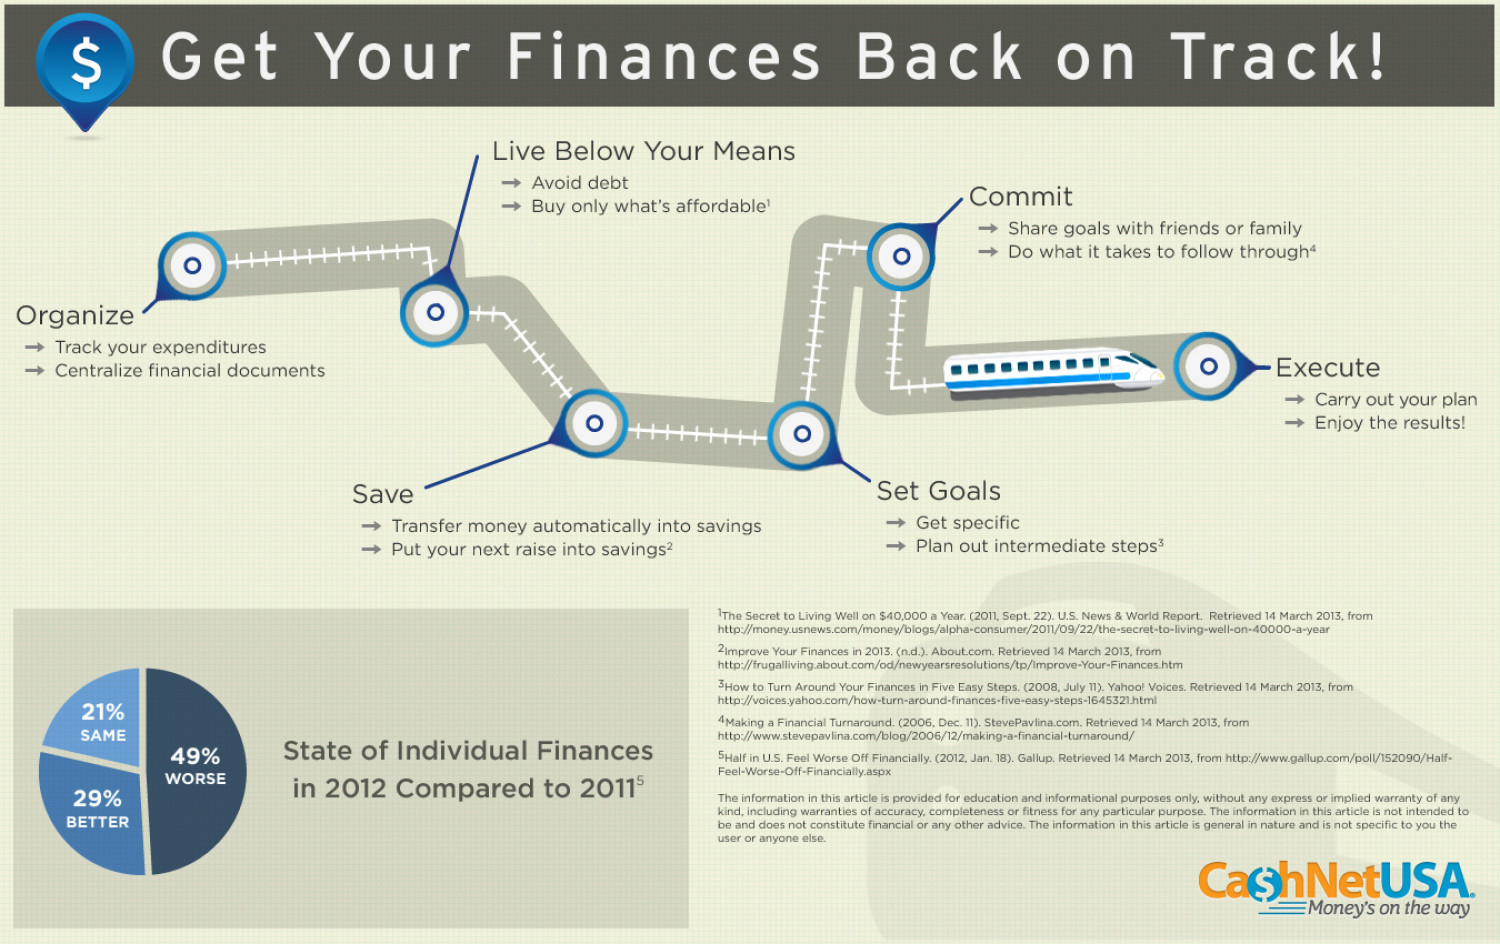 Get Your Finances Back on Track! Infographic